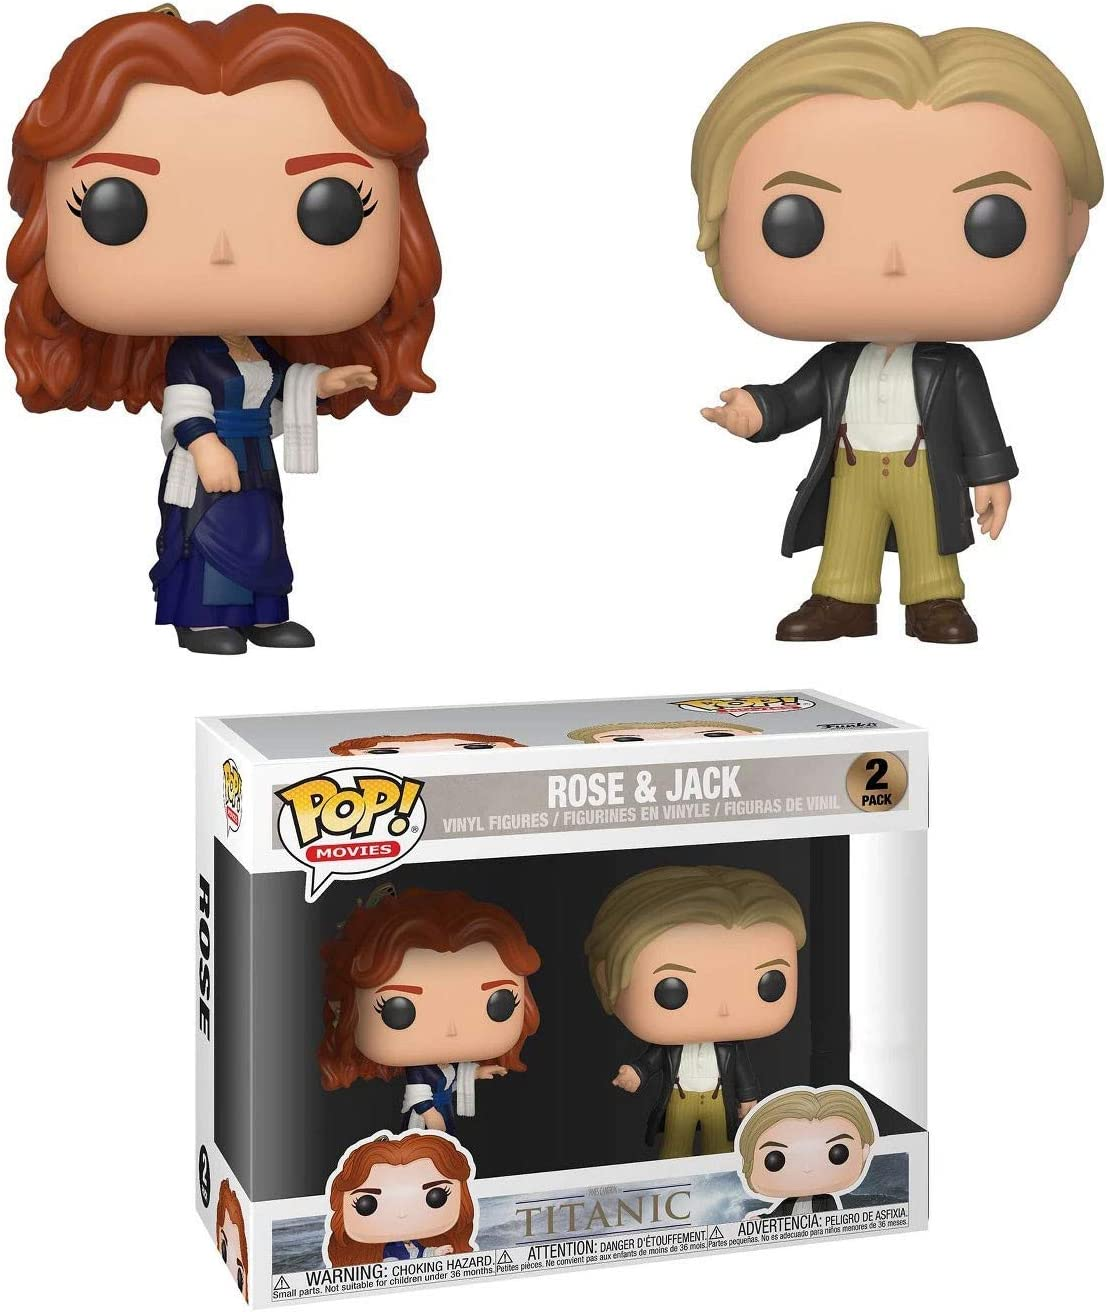 Funko - Figurine Titanic - 2-Pack Rose & Jack Exclu Pop 10cm - 0889698364379: Amazon.es: Juguetes y juegos